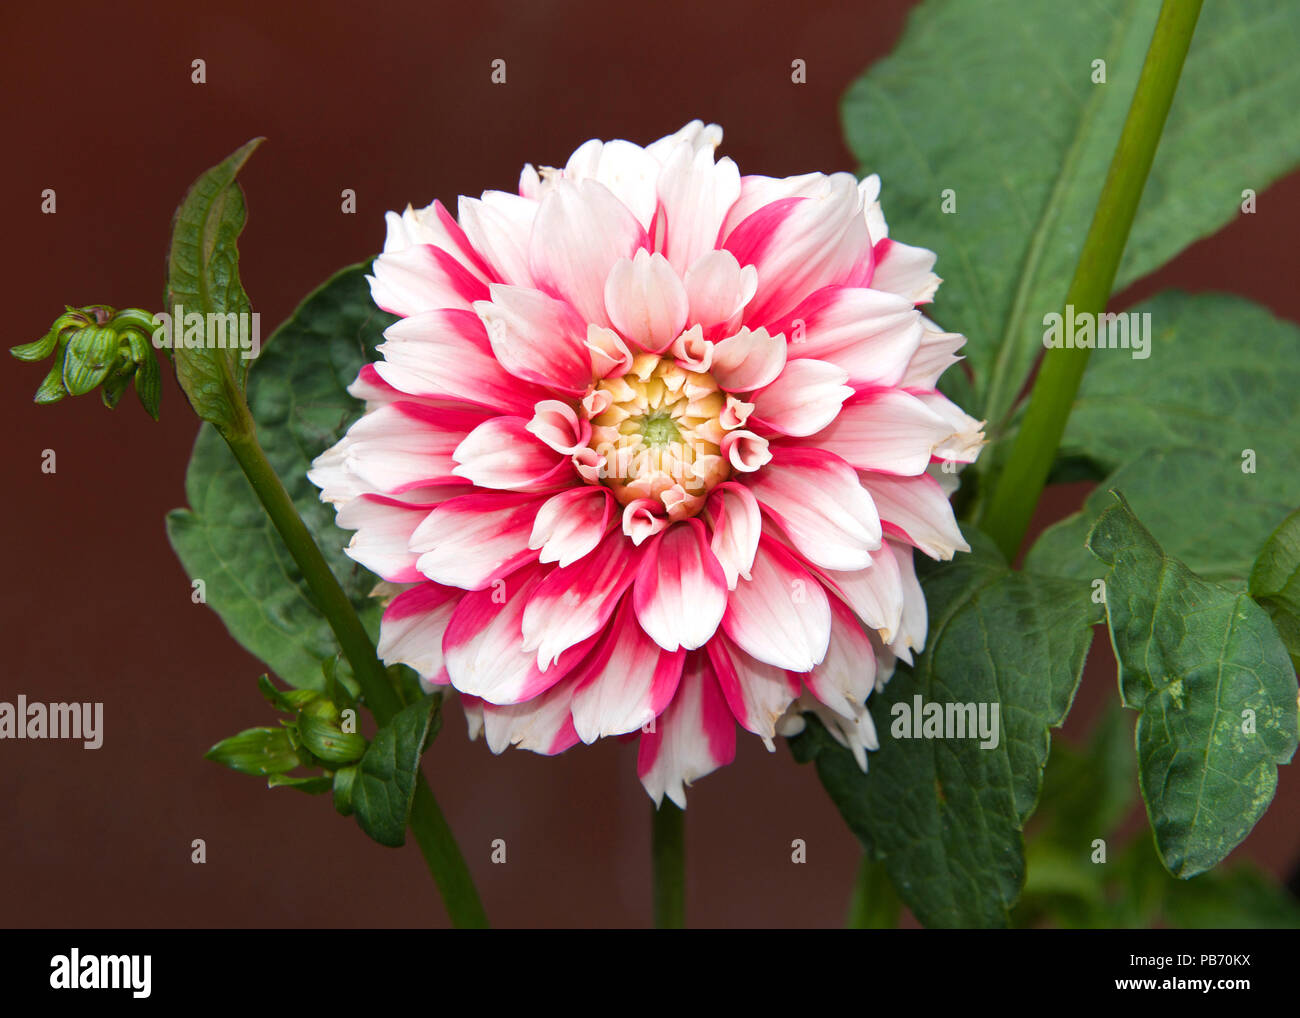 Close up on one dahlia flower bright pink and white dahlia is a close up on one dahlia flower bright pink and white dahlia is a genus of bushy tuberous herbaceous perennial plants native to mexico izmirmasajfo